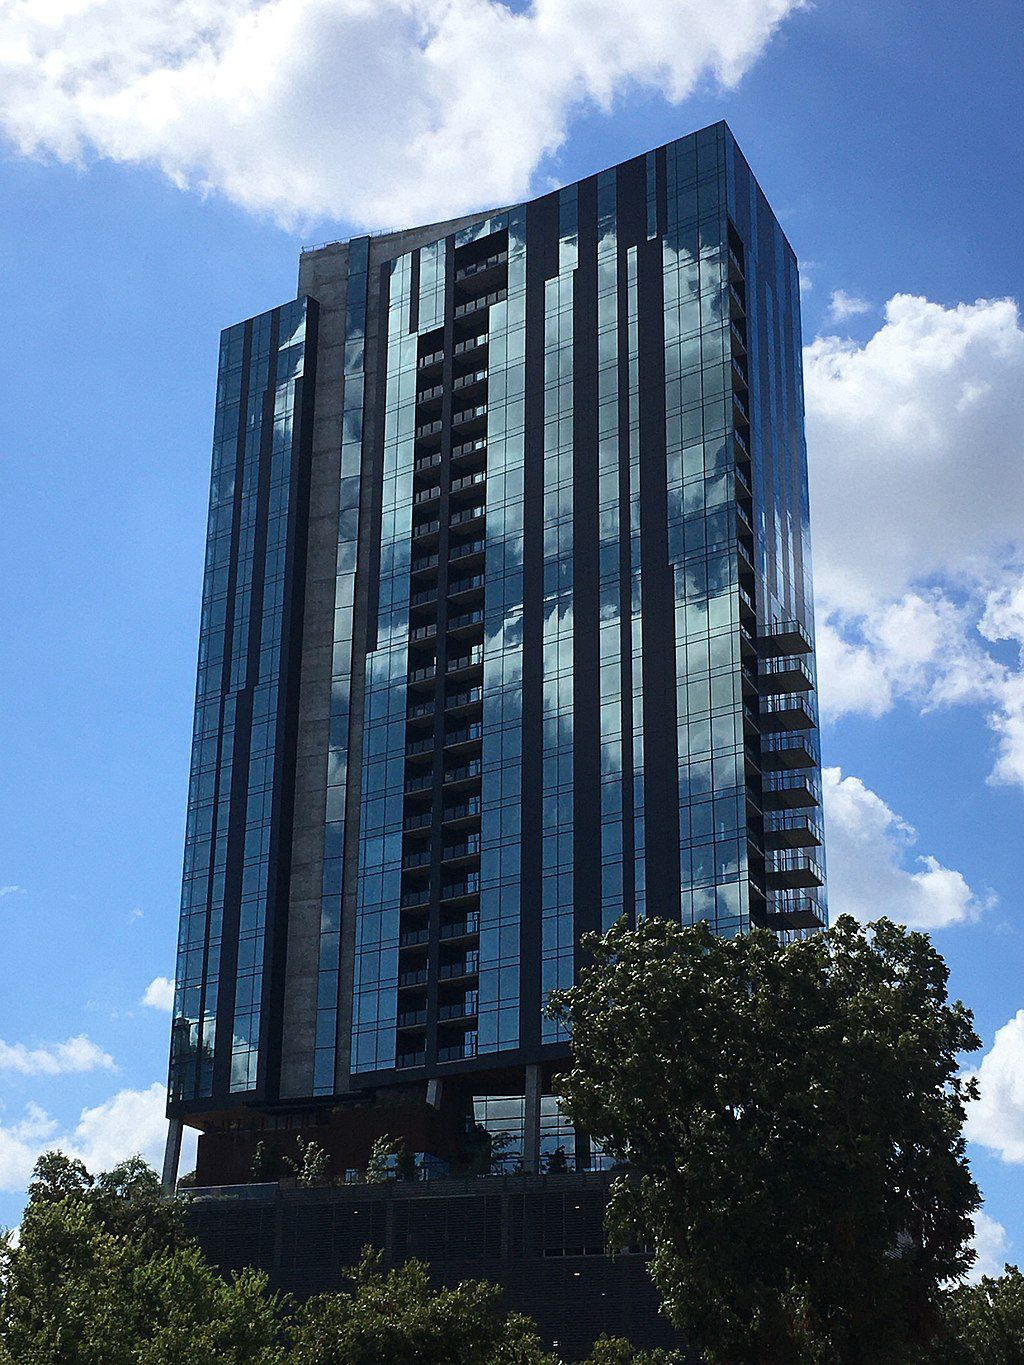 A tall glass building with trees grouped at the bottom